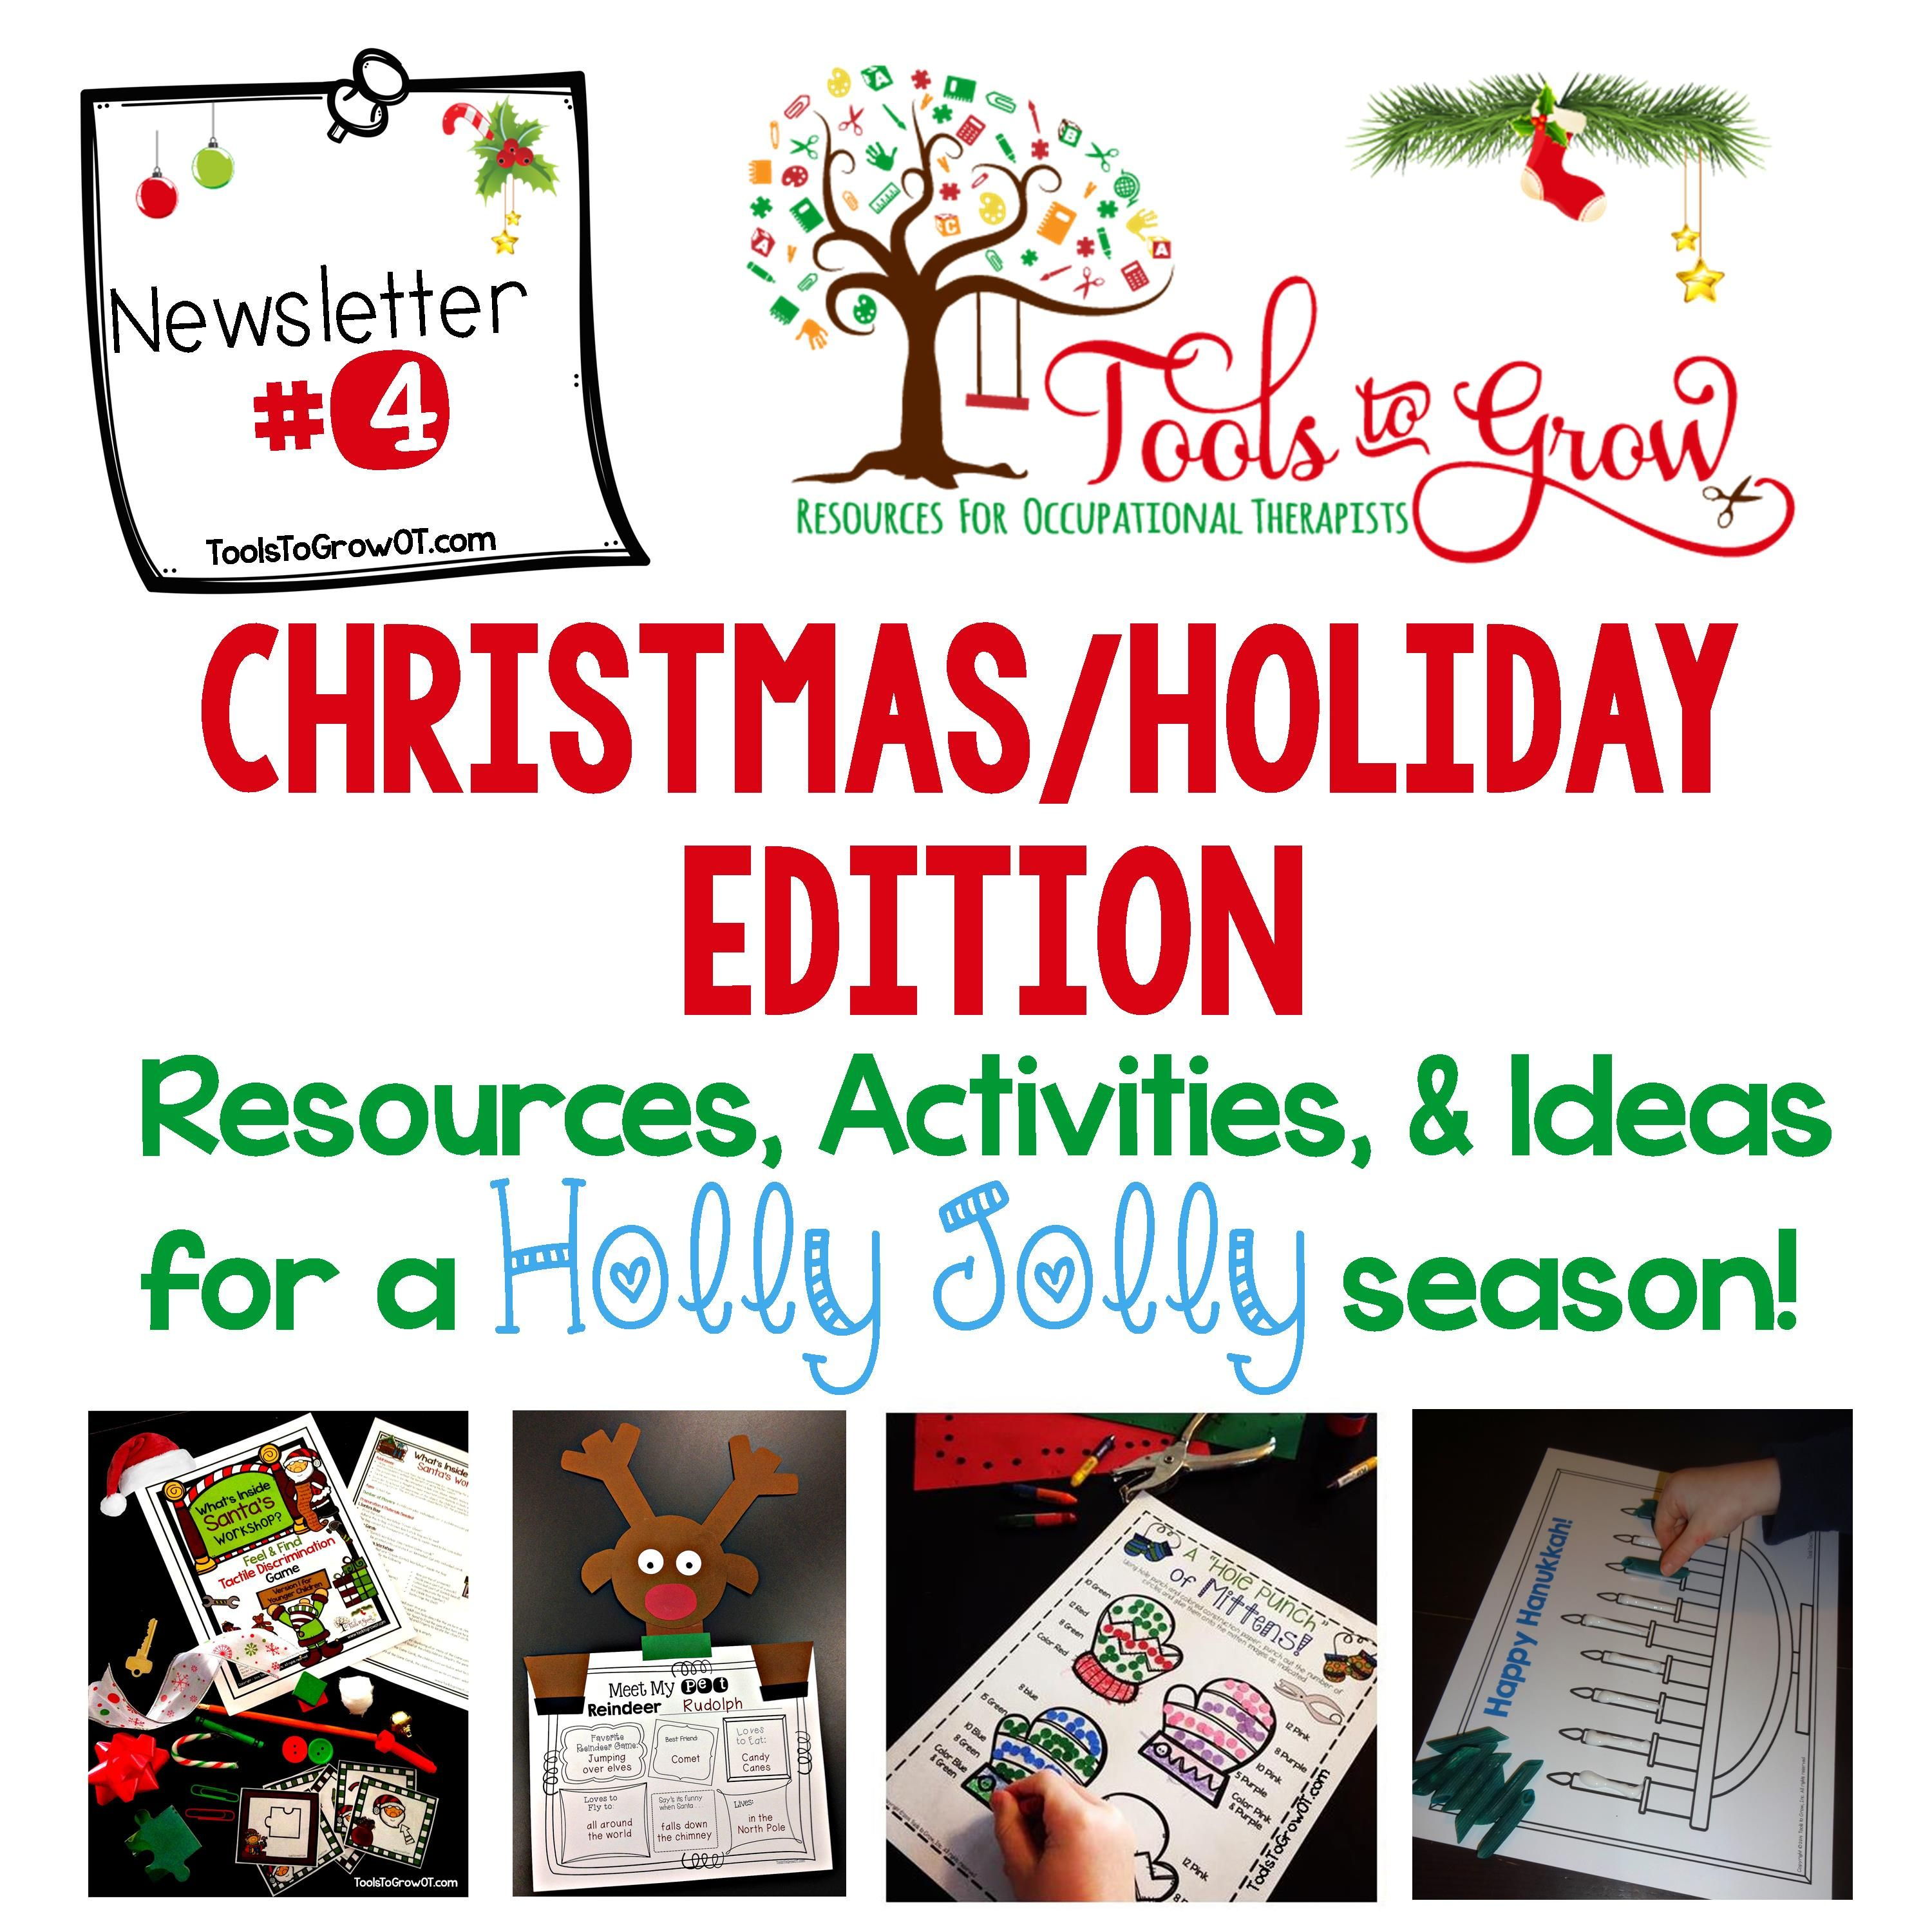 ChristmasHoliday Newsletter From Tools To Grow  Christmas